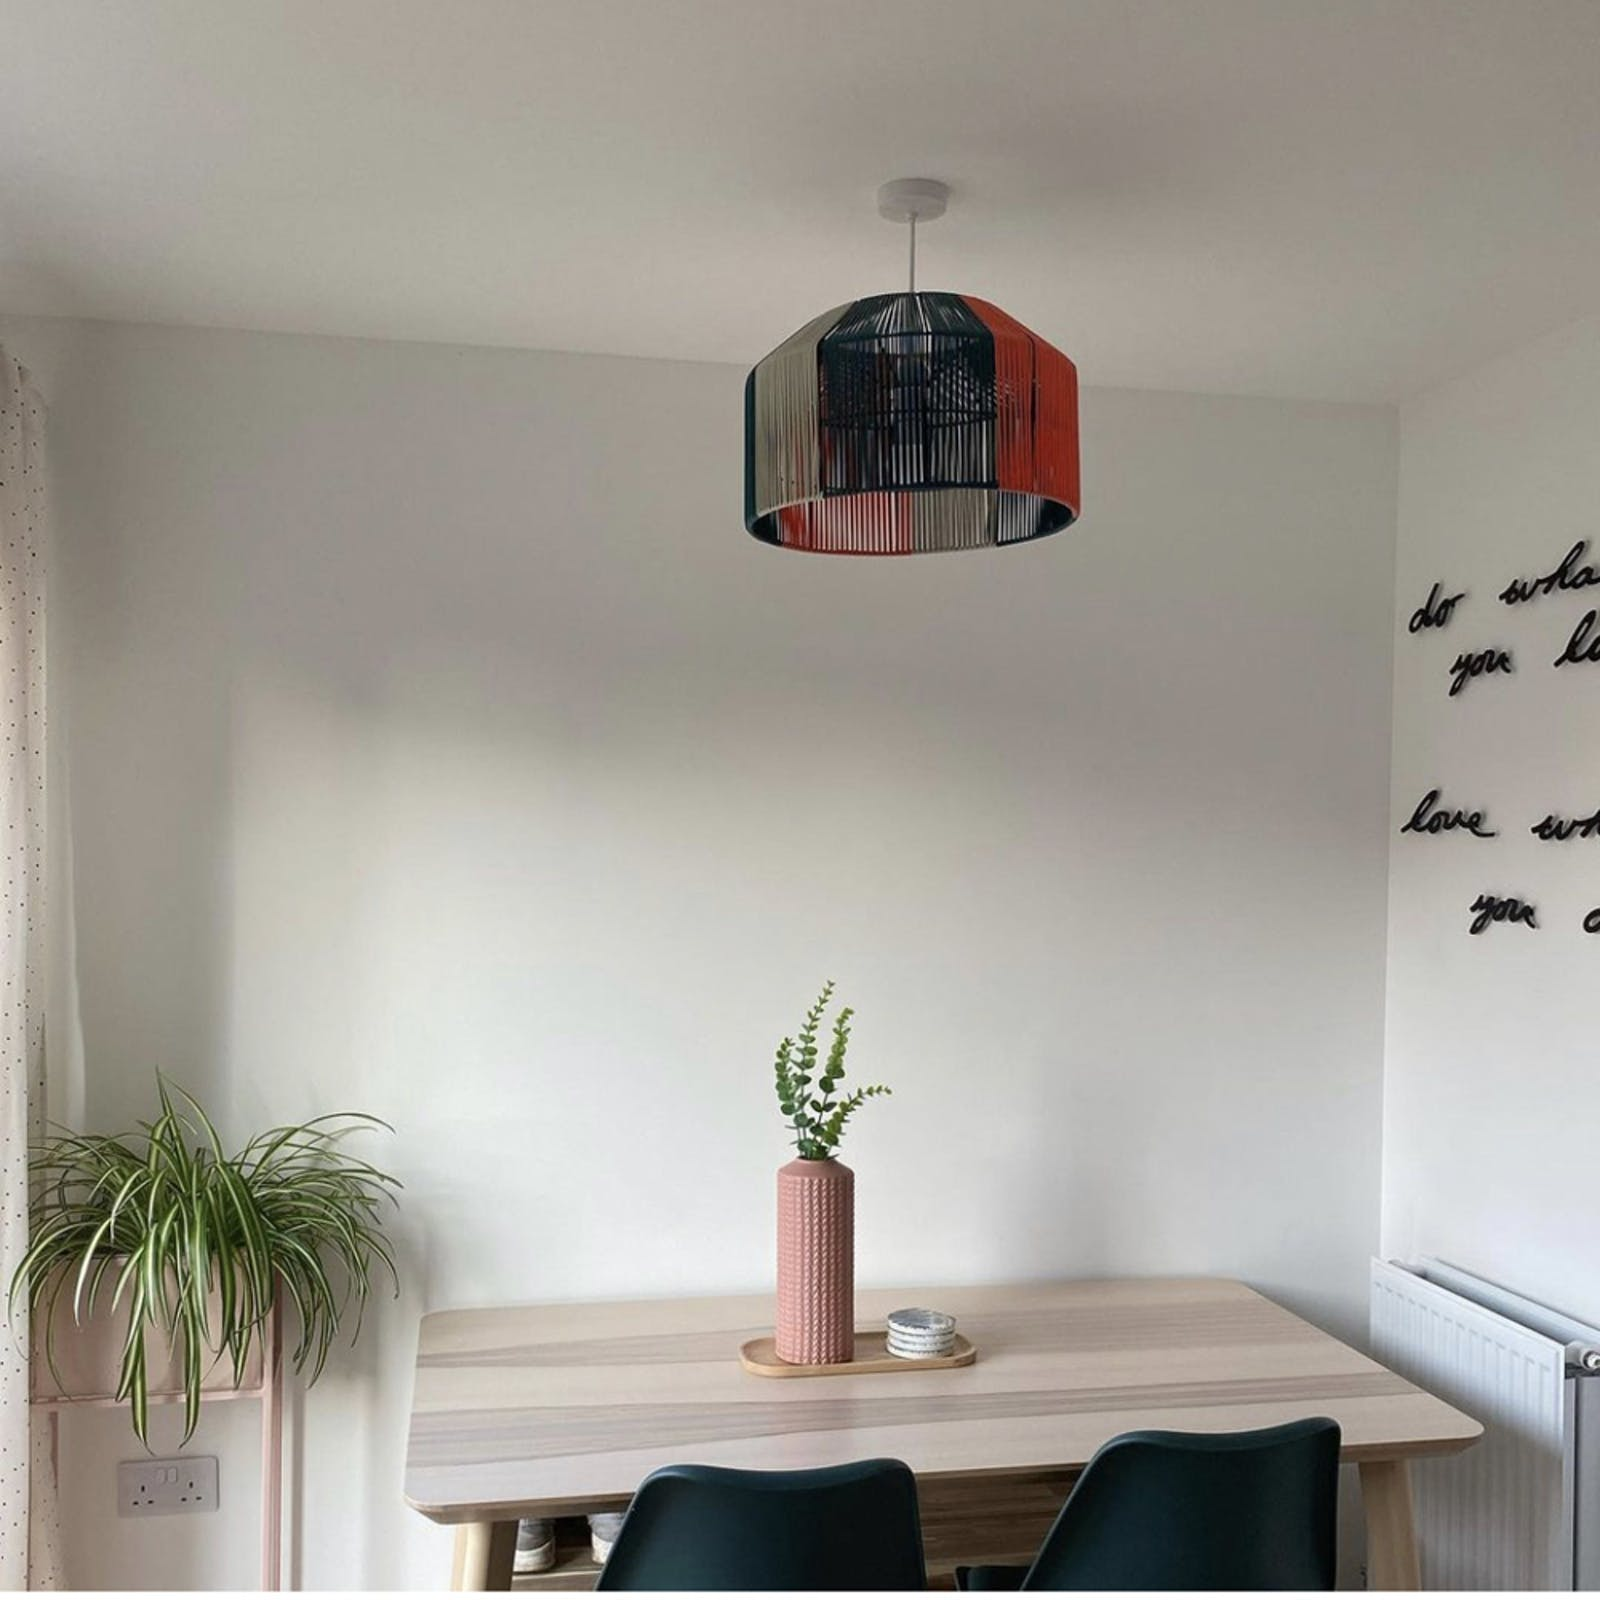 Dining room with white walls and plants